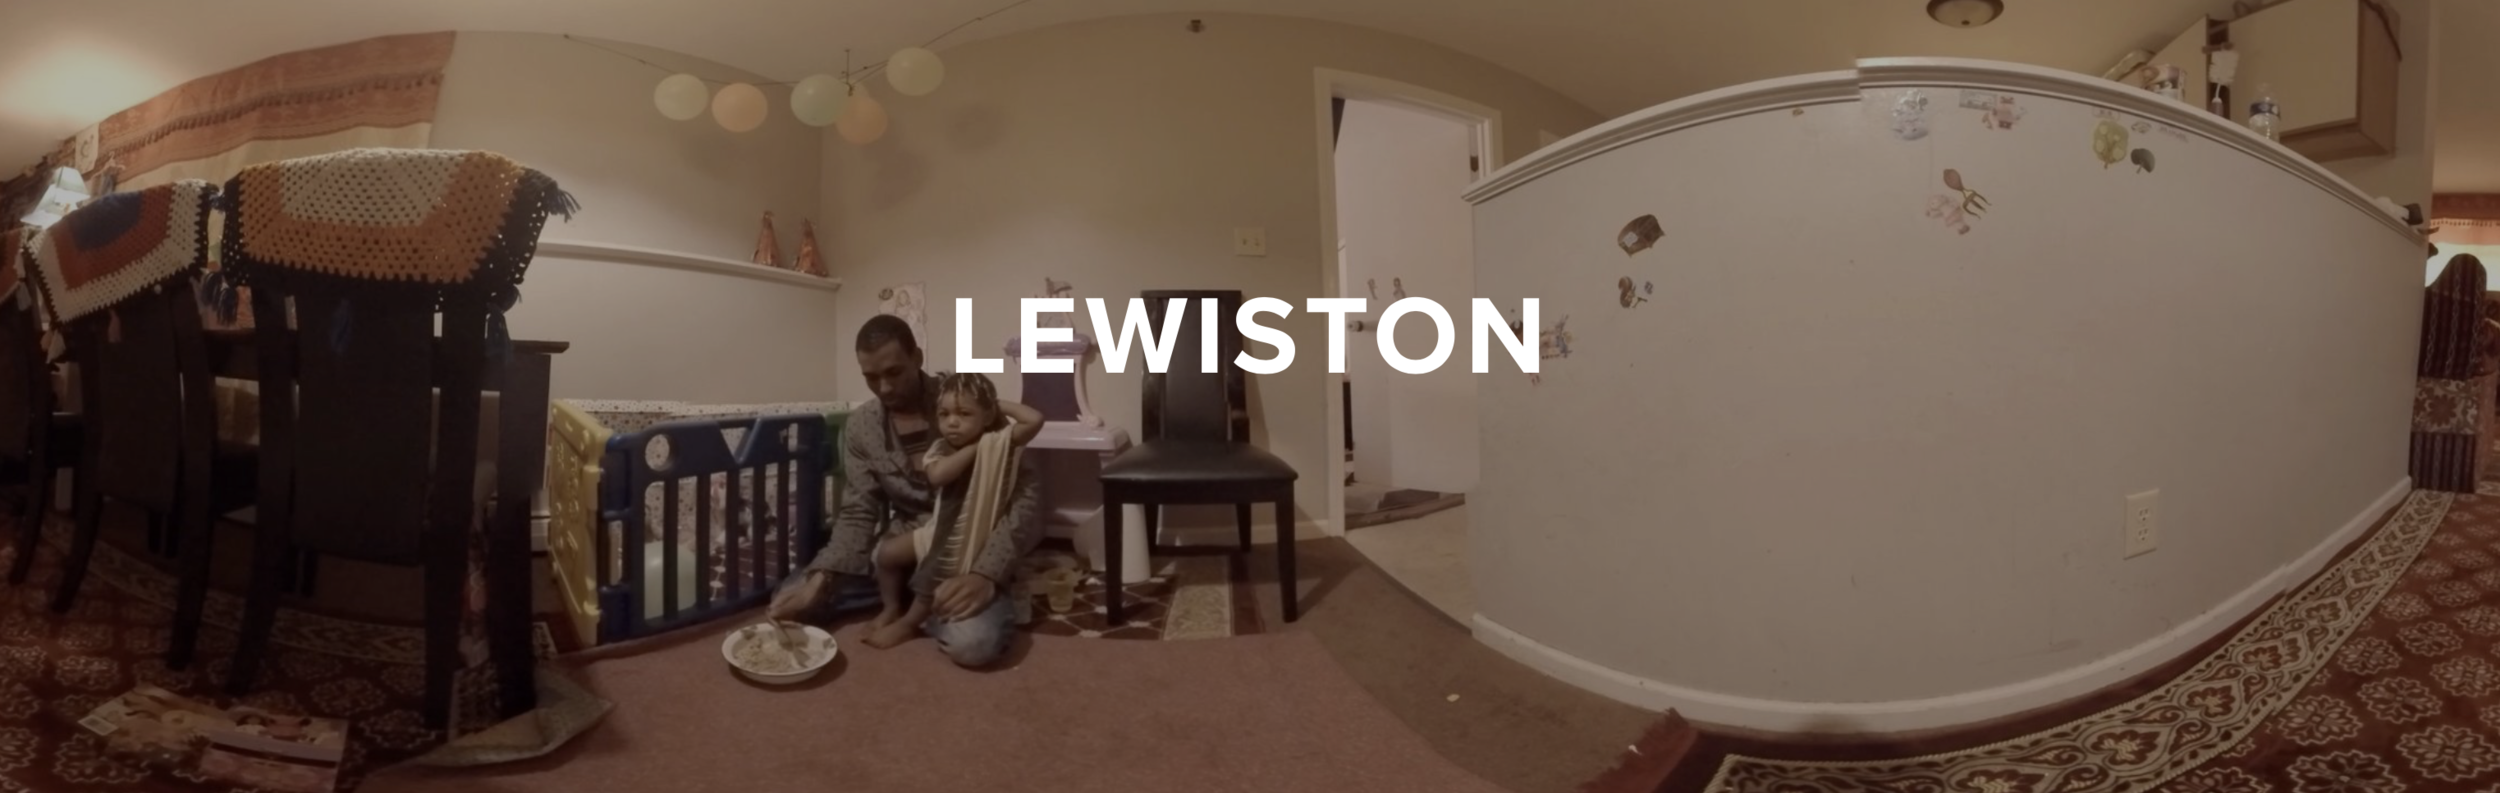 A Shared Space: Lewiston  is the story of Hilowle and Shuab who grew up in Dadaab, Kenya– the largest refugee camp in the world. Today, both have started families and call Lewiston, Maine home. Raising children in one of the United State's least diverse states in the wake of the Muslim Ban and rising nationalist sentiments has created challenges neither expected.